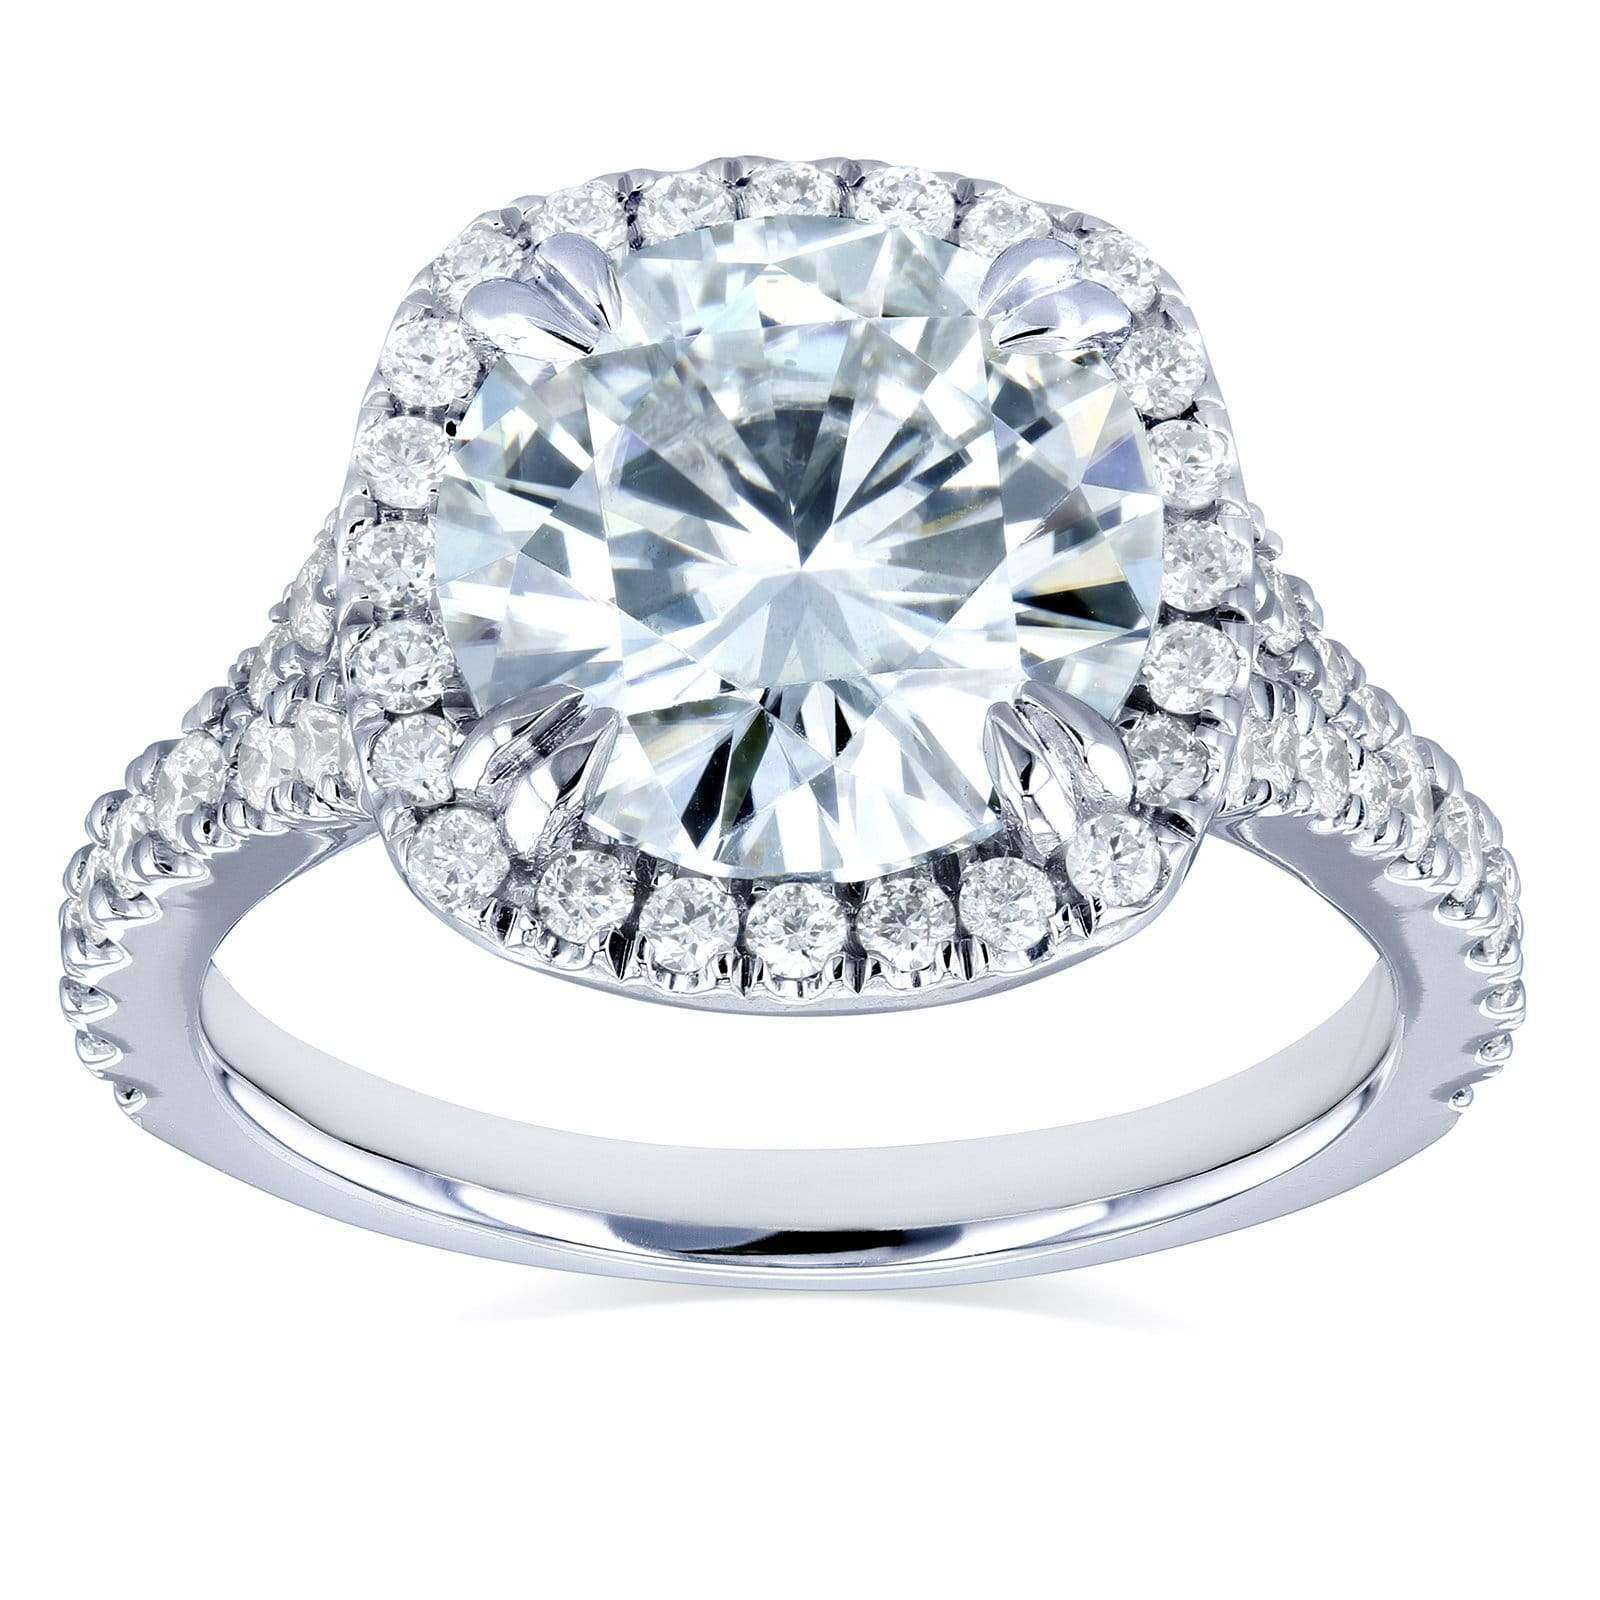 Discounts Round Forever One Moissanite and Diamond Halo Engagement Ring 3 5/8 CTW 14k White Gold - 10